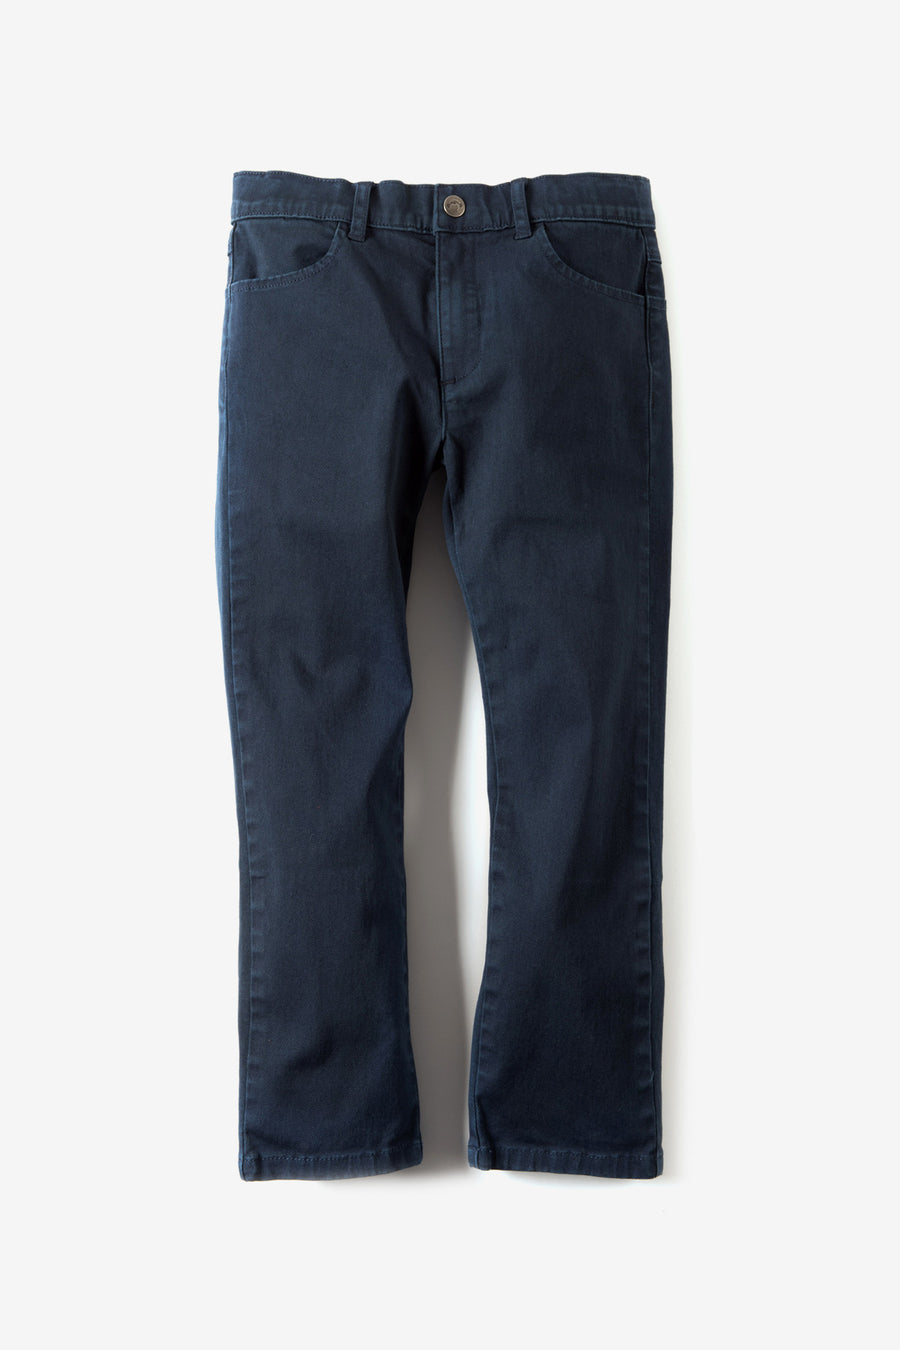 Appaman Twill Boys Pant - Galaxy